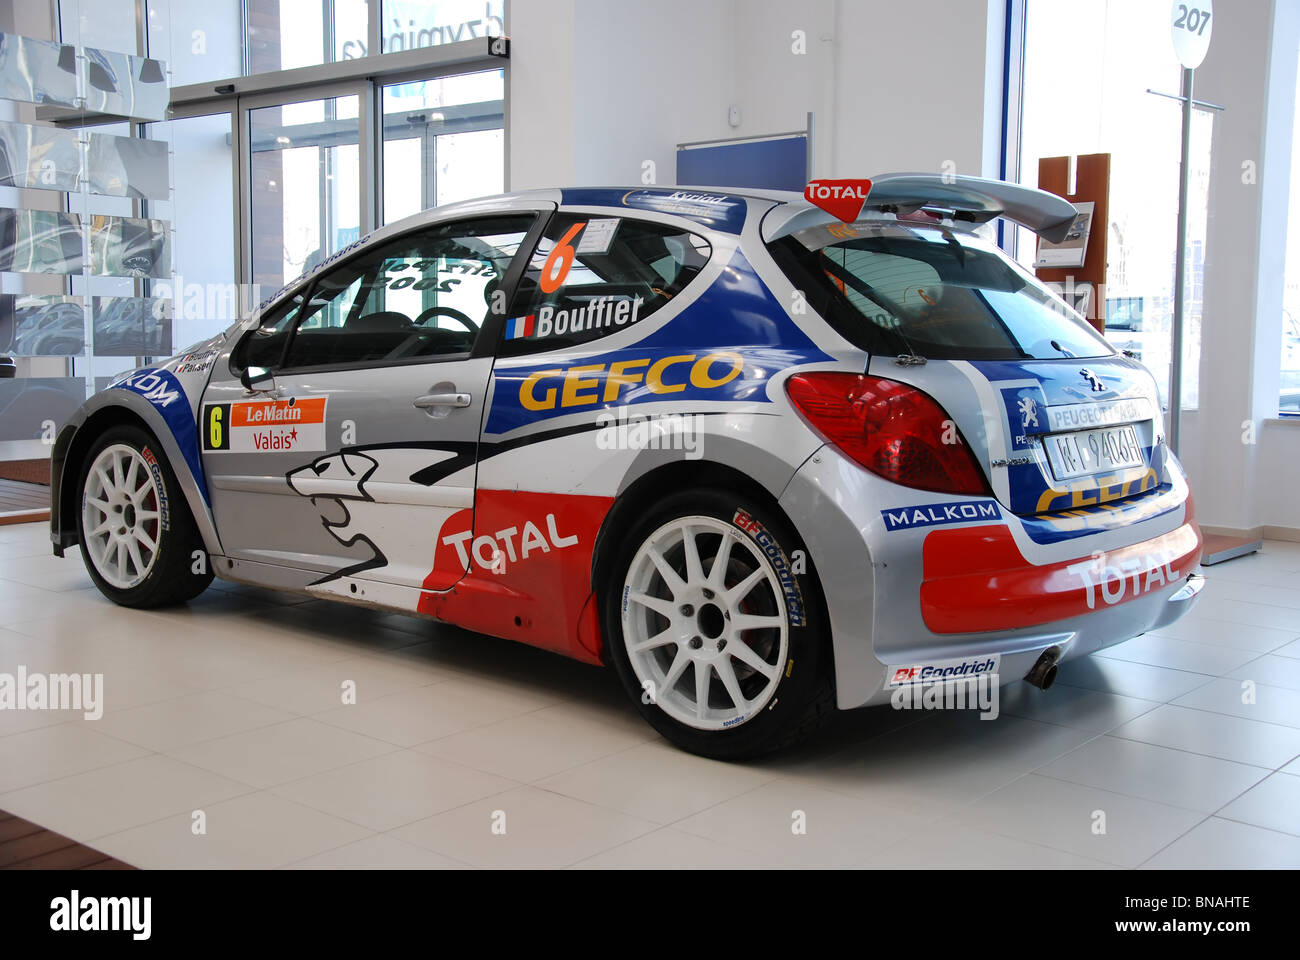 peugeot 207 s2000 - bryan bouffier rally car - exterior stock photo